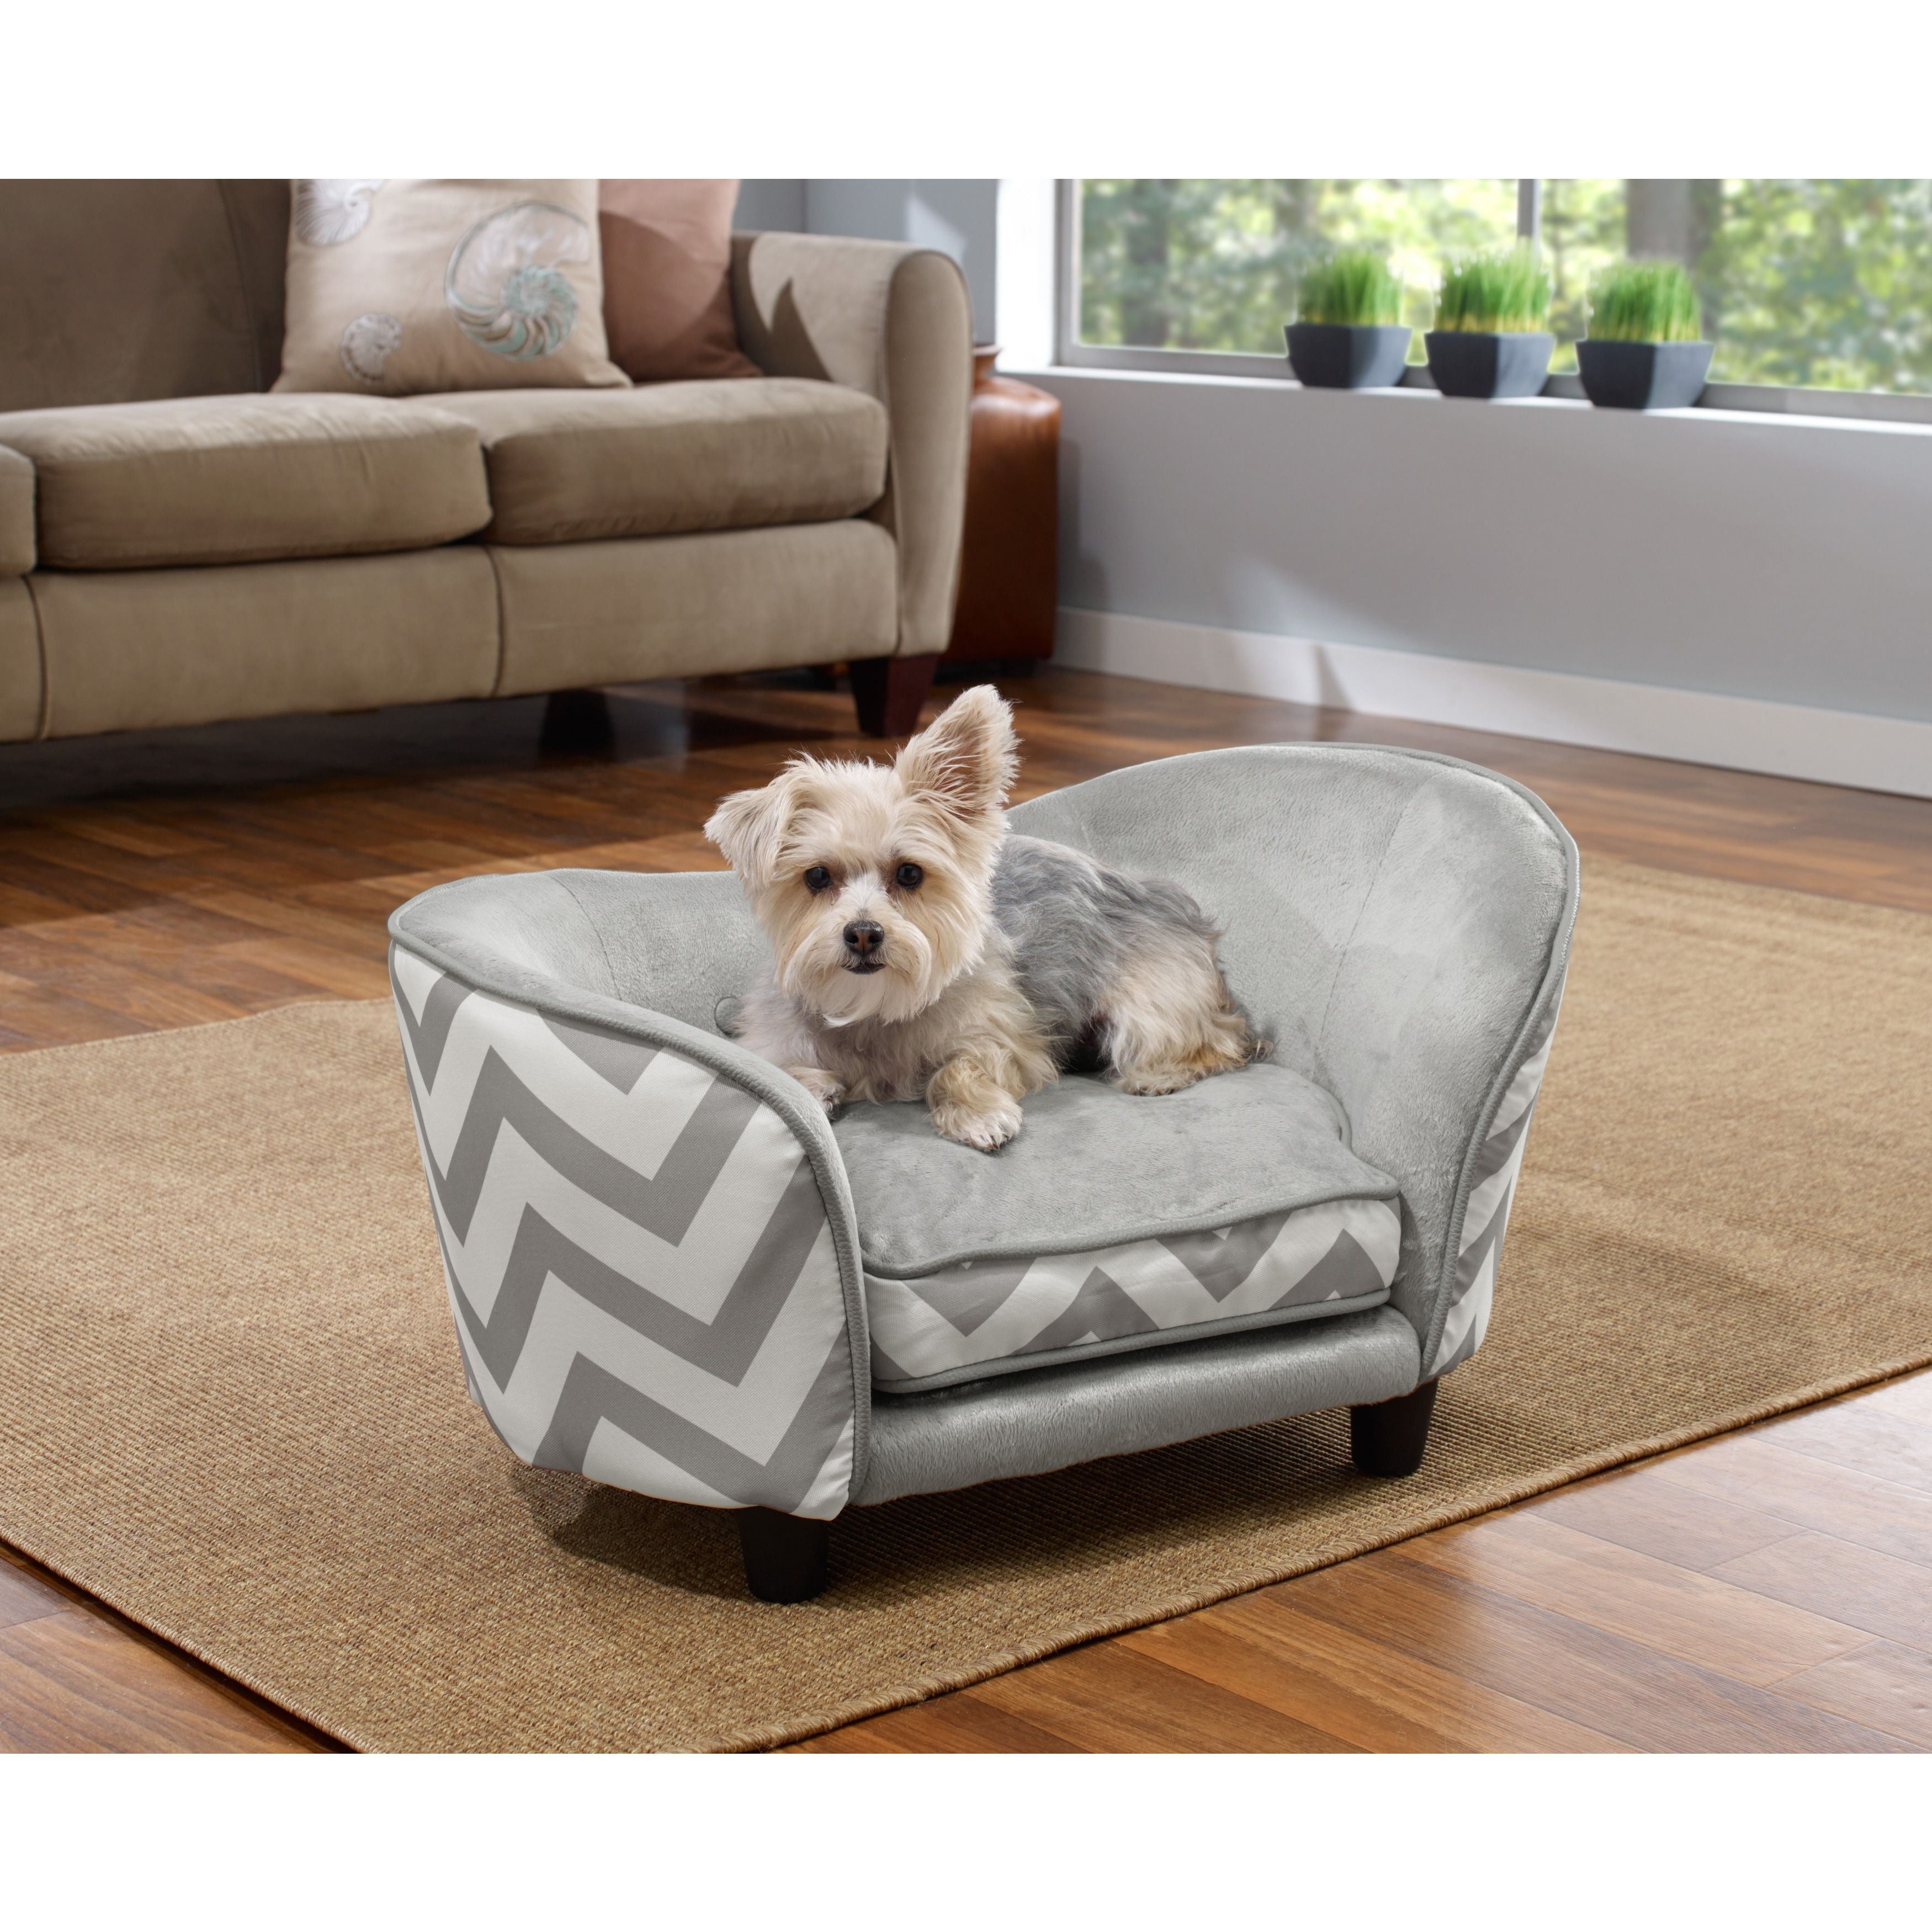 dogs removable picture couch cover of navy cats dog lounge and bed small p quilted for orthopedic pet sofa